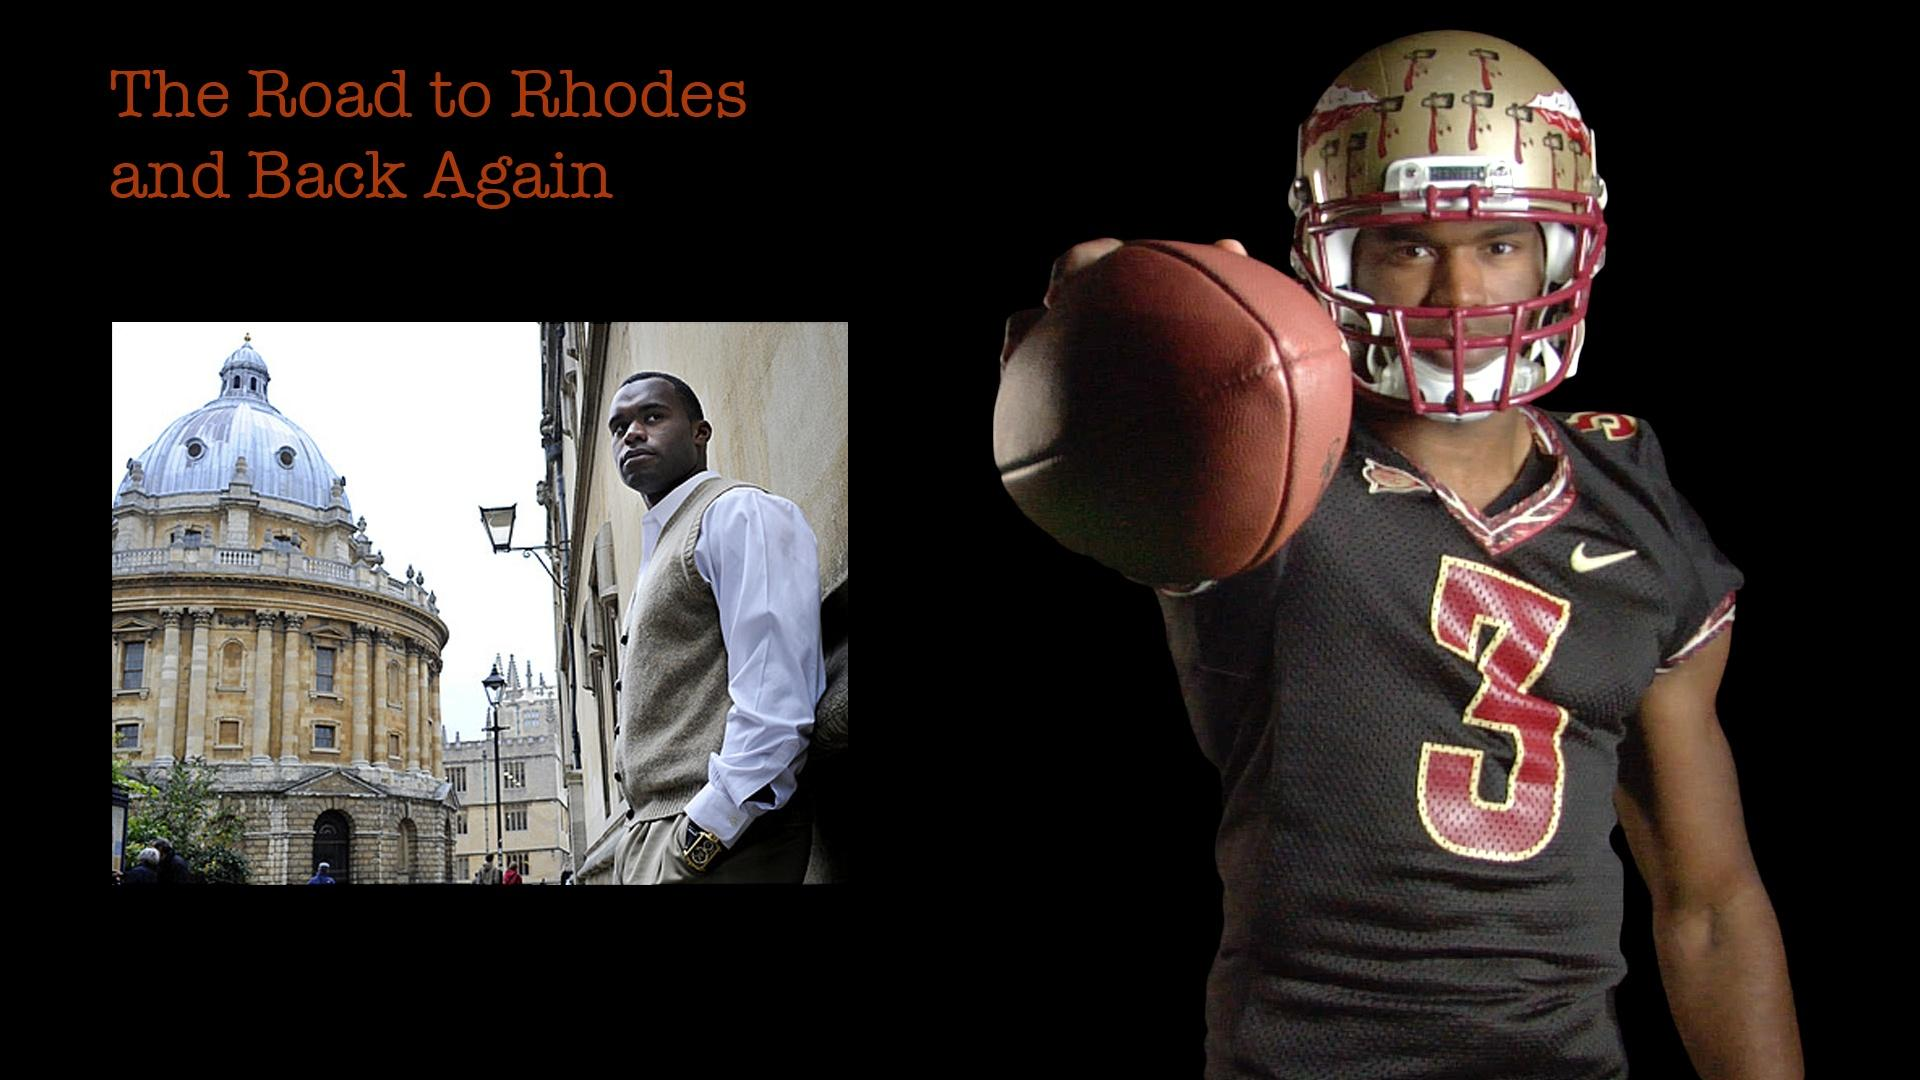 Myron Rolle: The Road to Rhodes and Back Again image